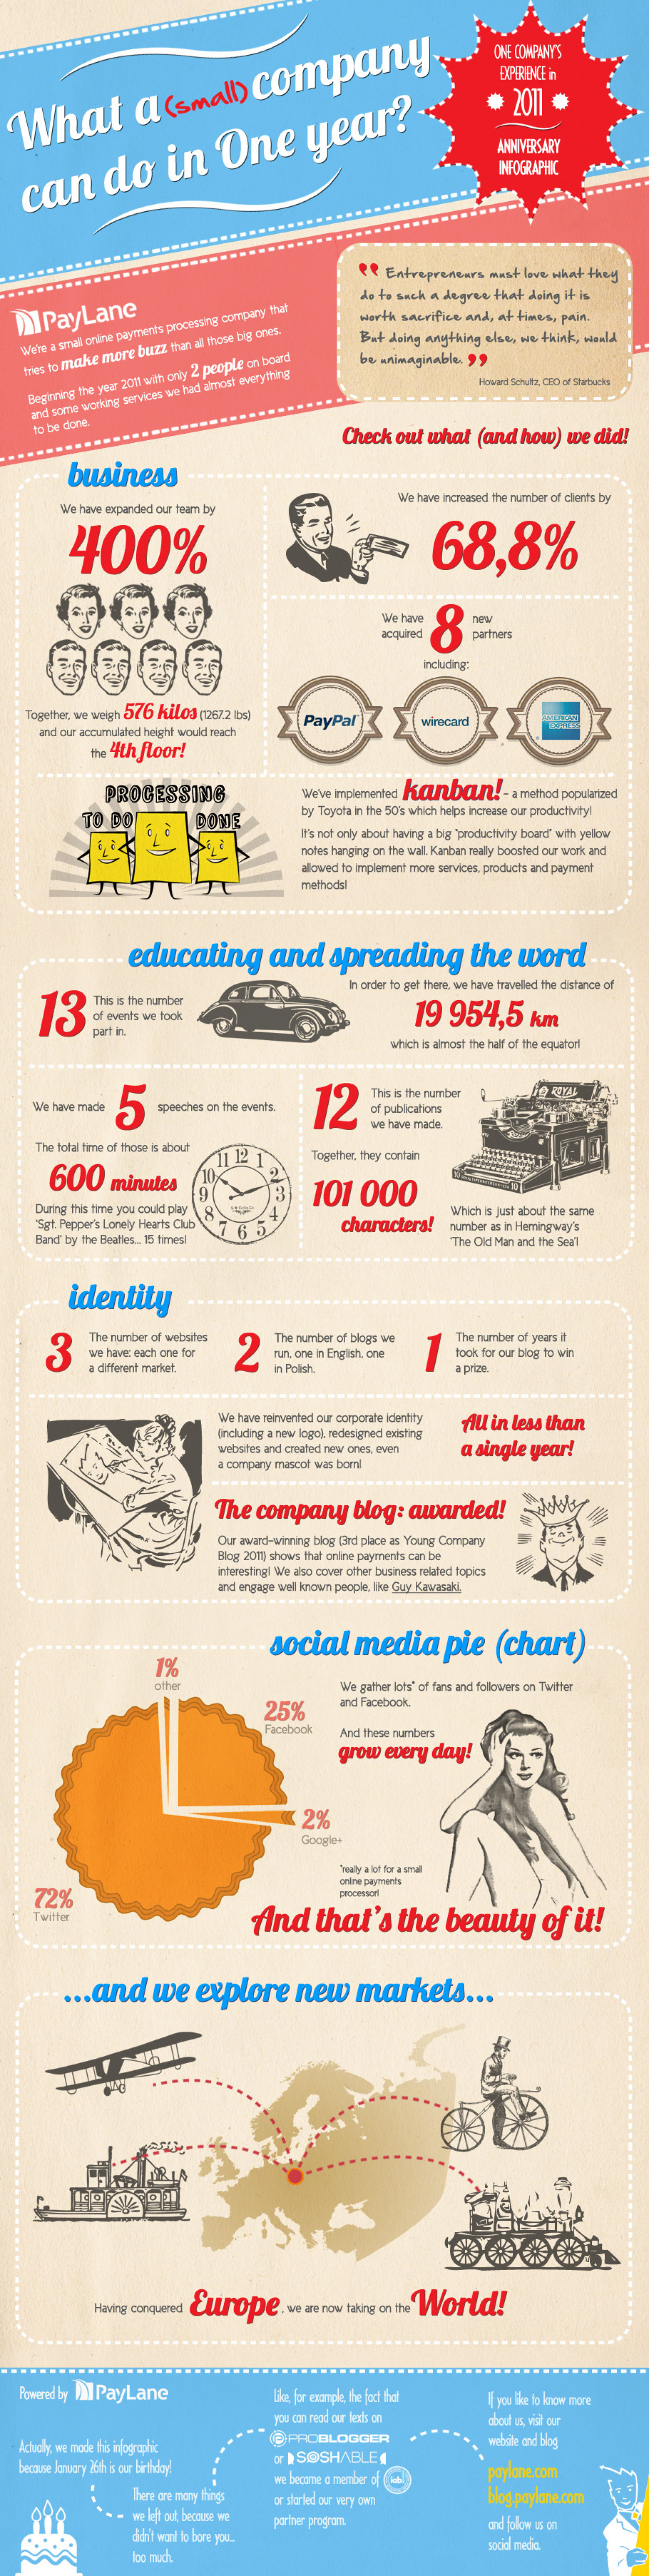 What a small company can do in one year? Infographic